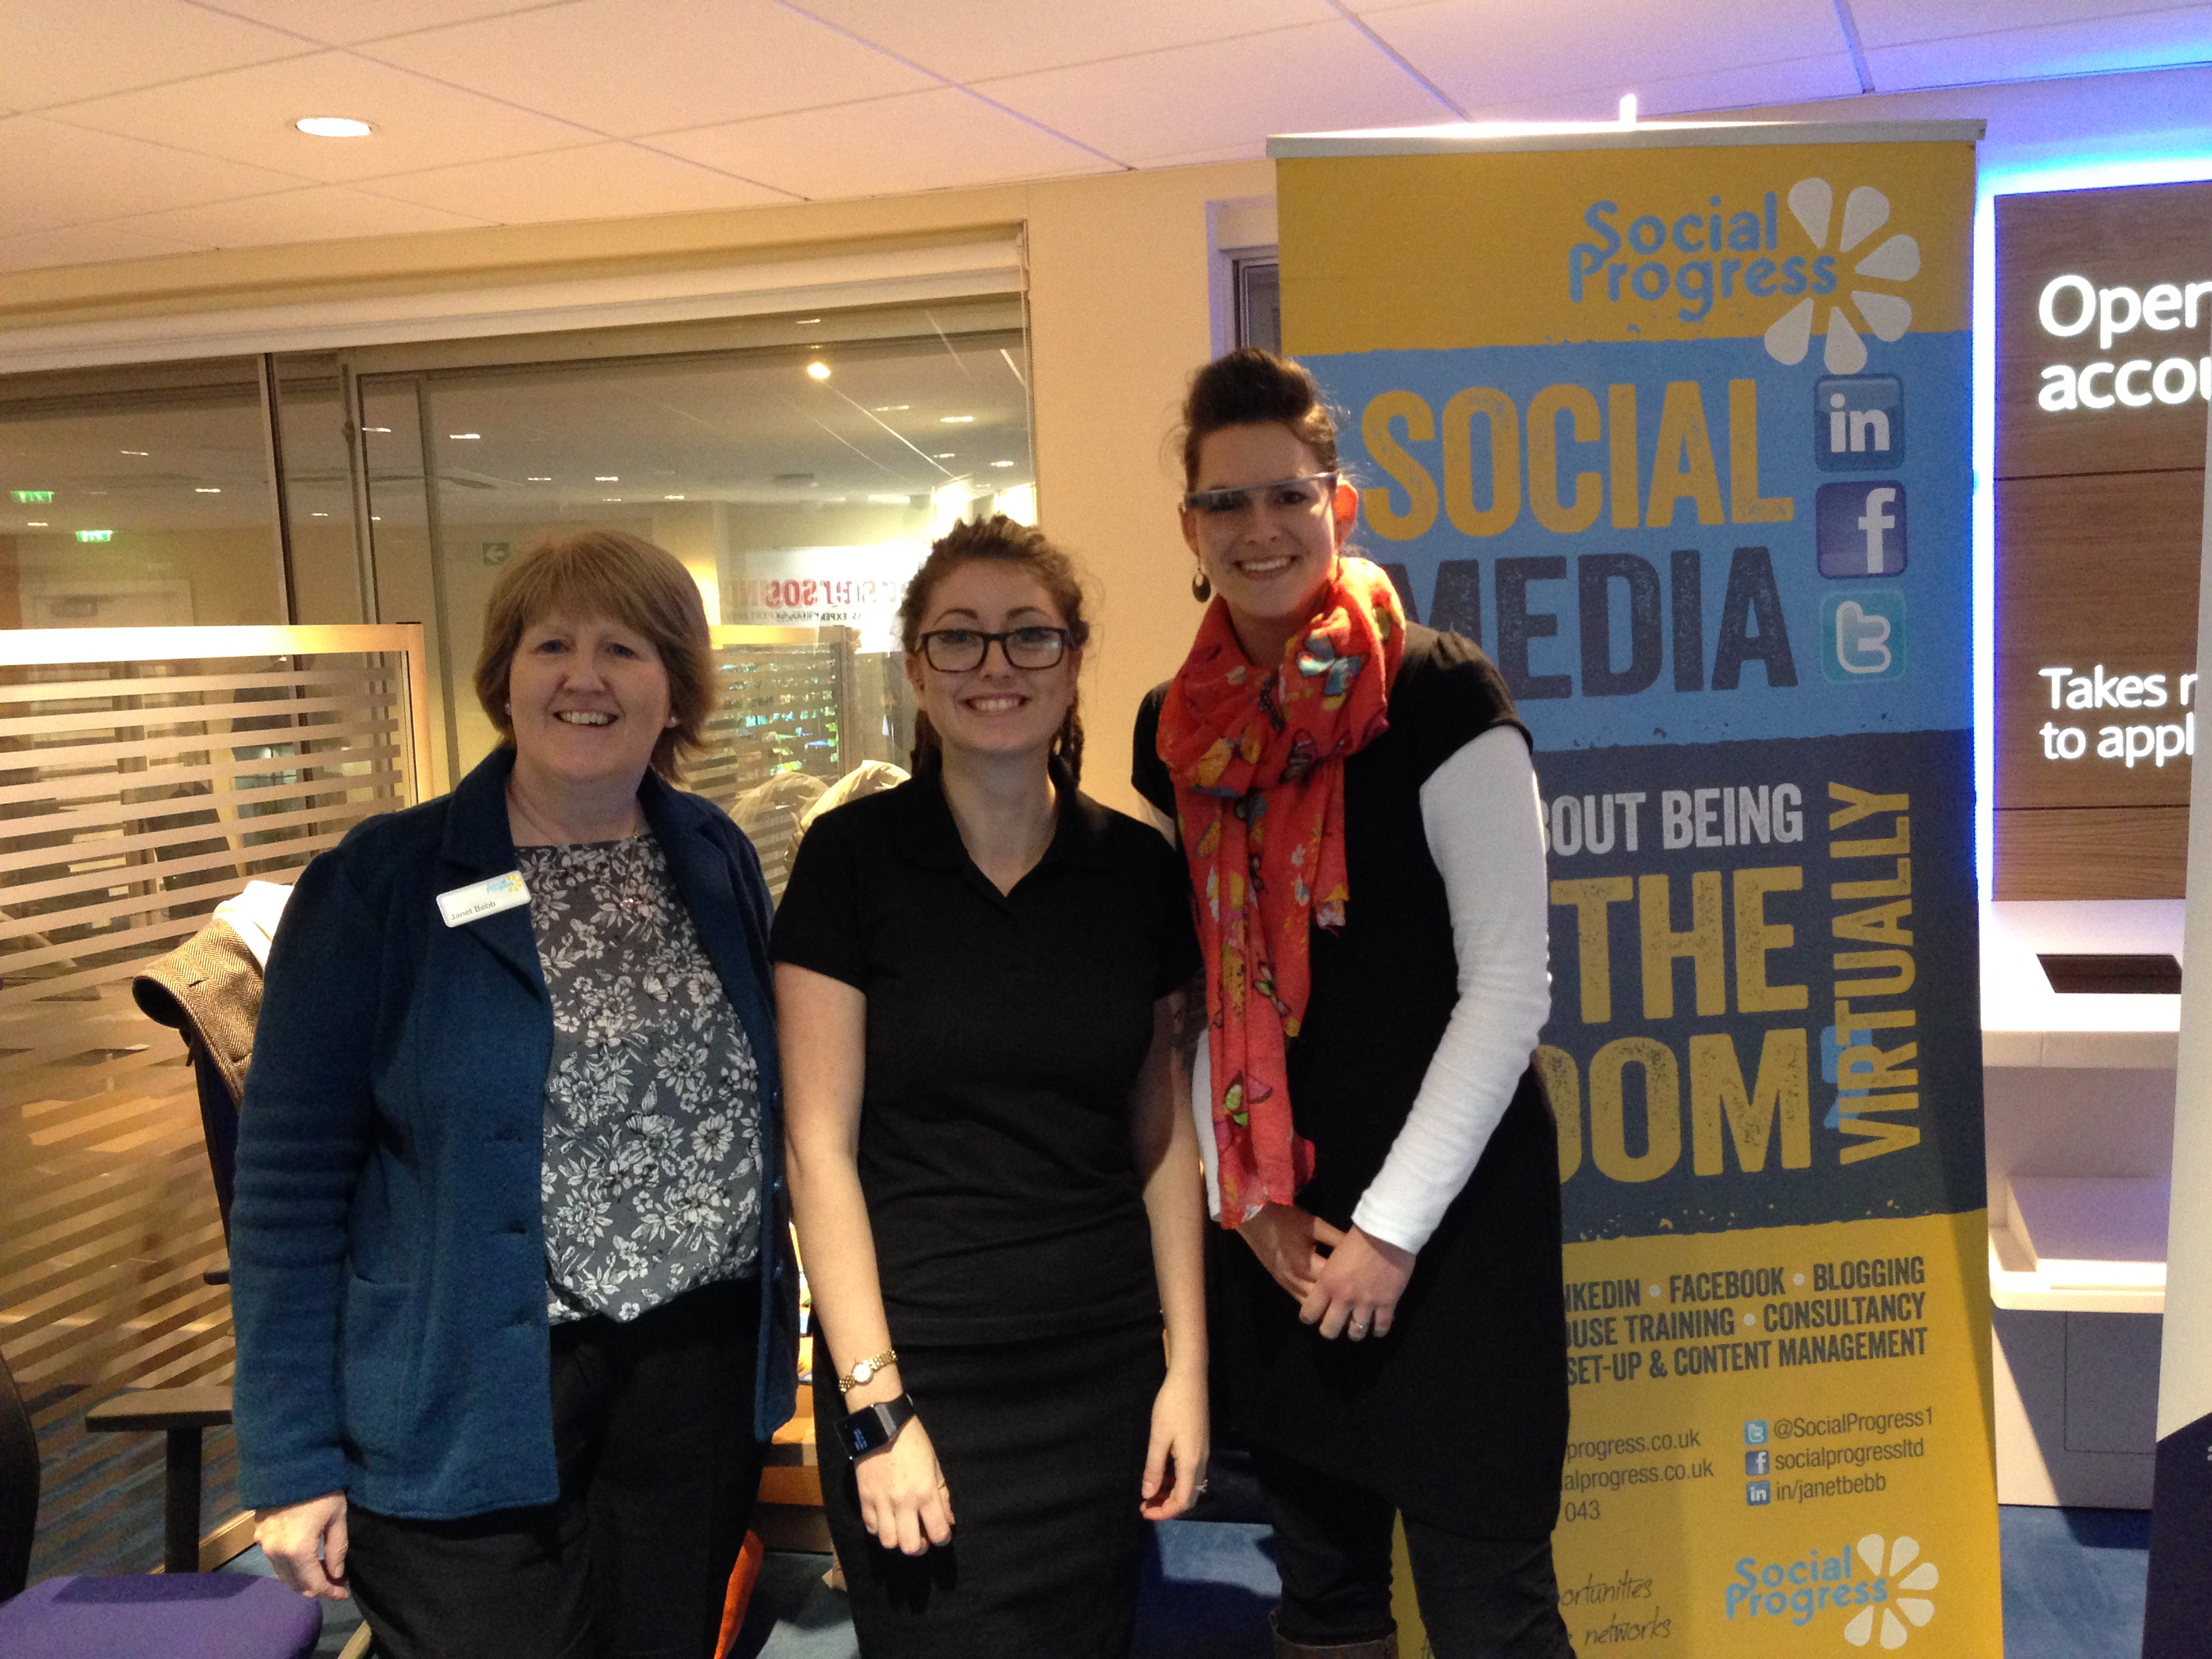 Janet & Esther with Gina (a Barclays Digital Eagle) at the Barclays Huddersfield Digital Business Club